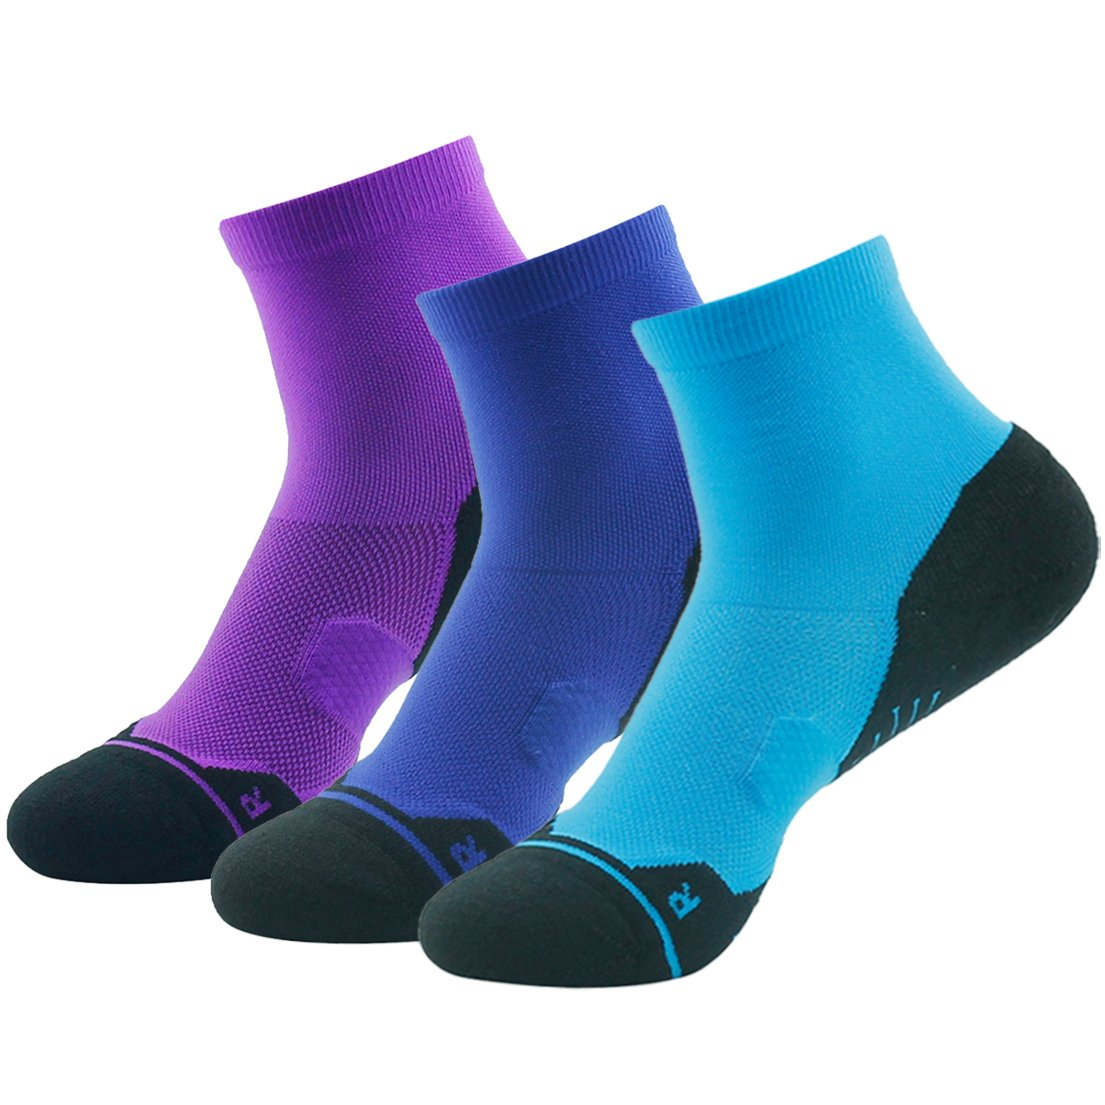 Z3 Pair bluee&purple&navy bluee Running Socks Support, HUSO Men Women High Performance Arch Compression Cushioned Quarter Socks 1,2,3,4,6 Pairs